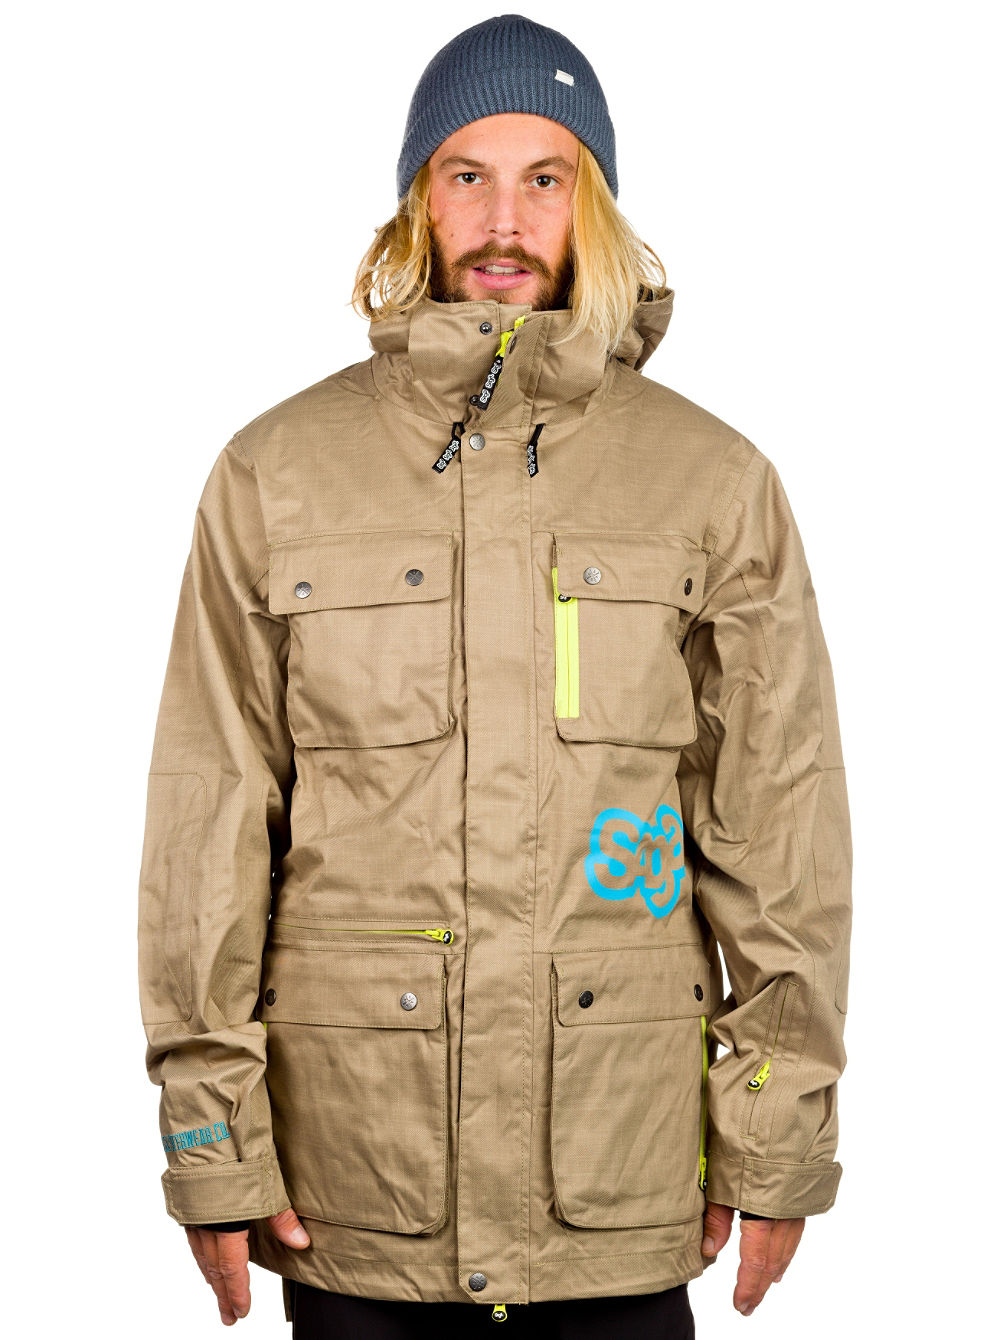 Buy Saga Outerwear Anomie Jacket online at blue-tomato.com